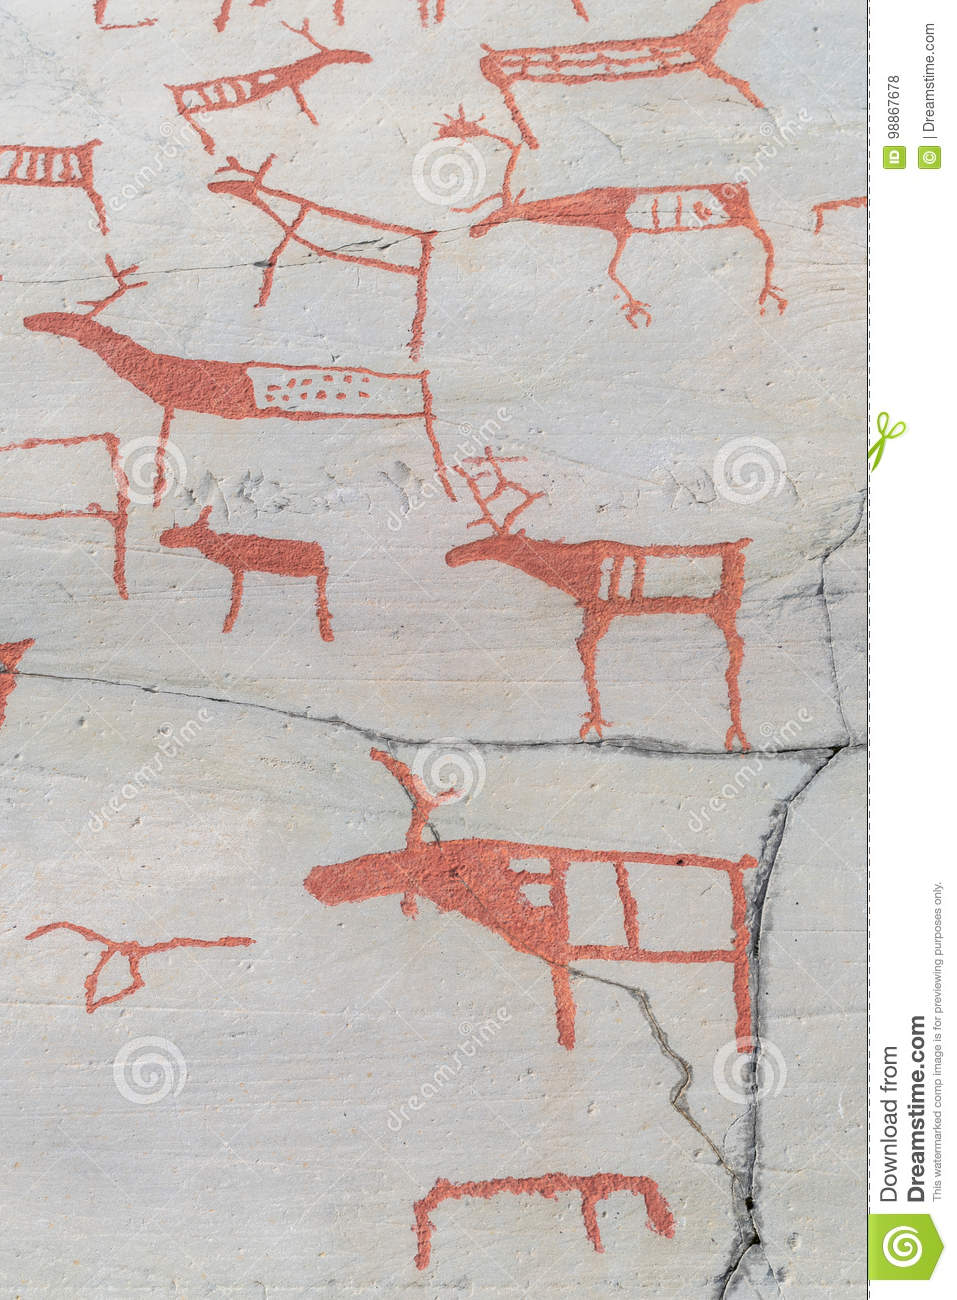 Alta rock carvings pictures view photos images of alta rock